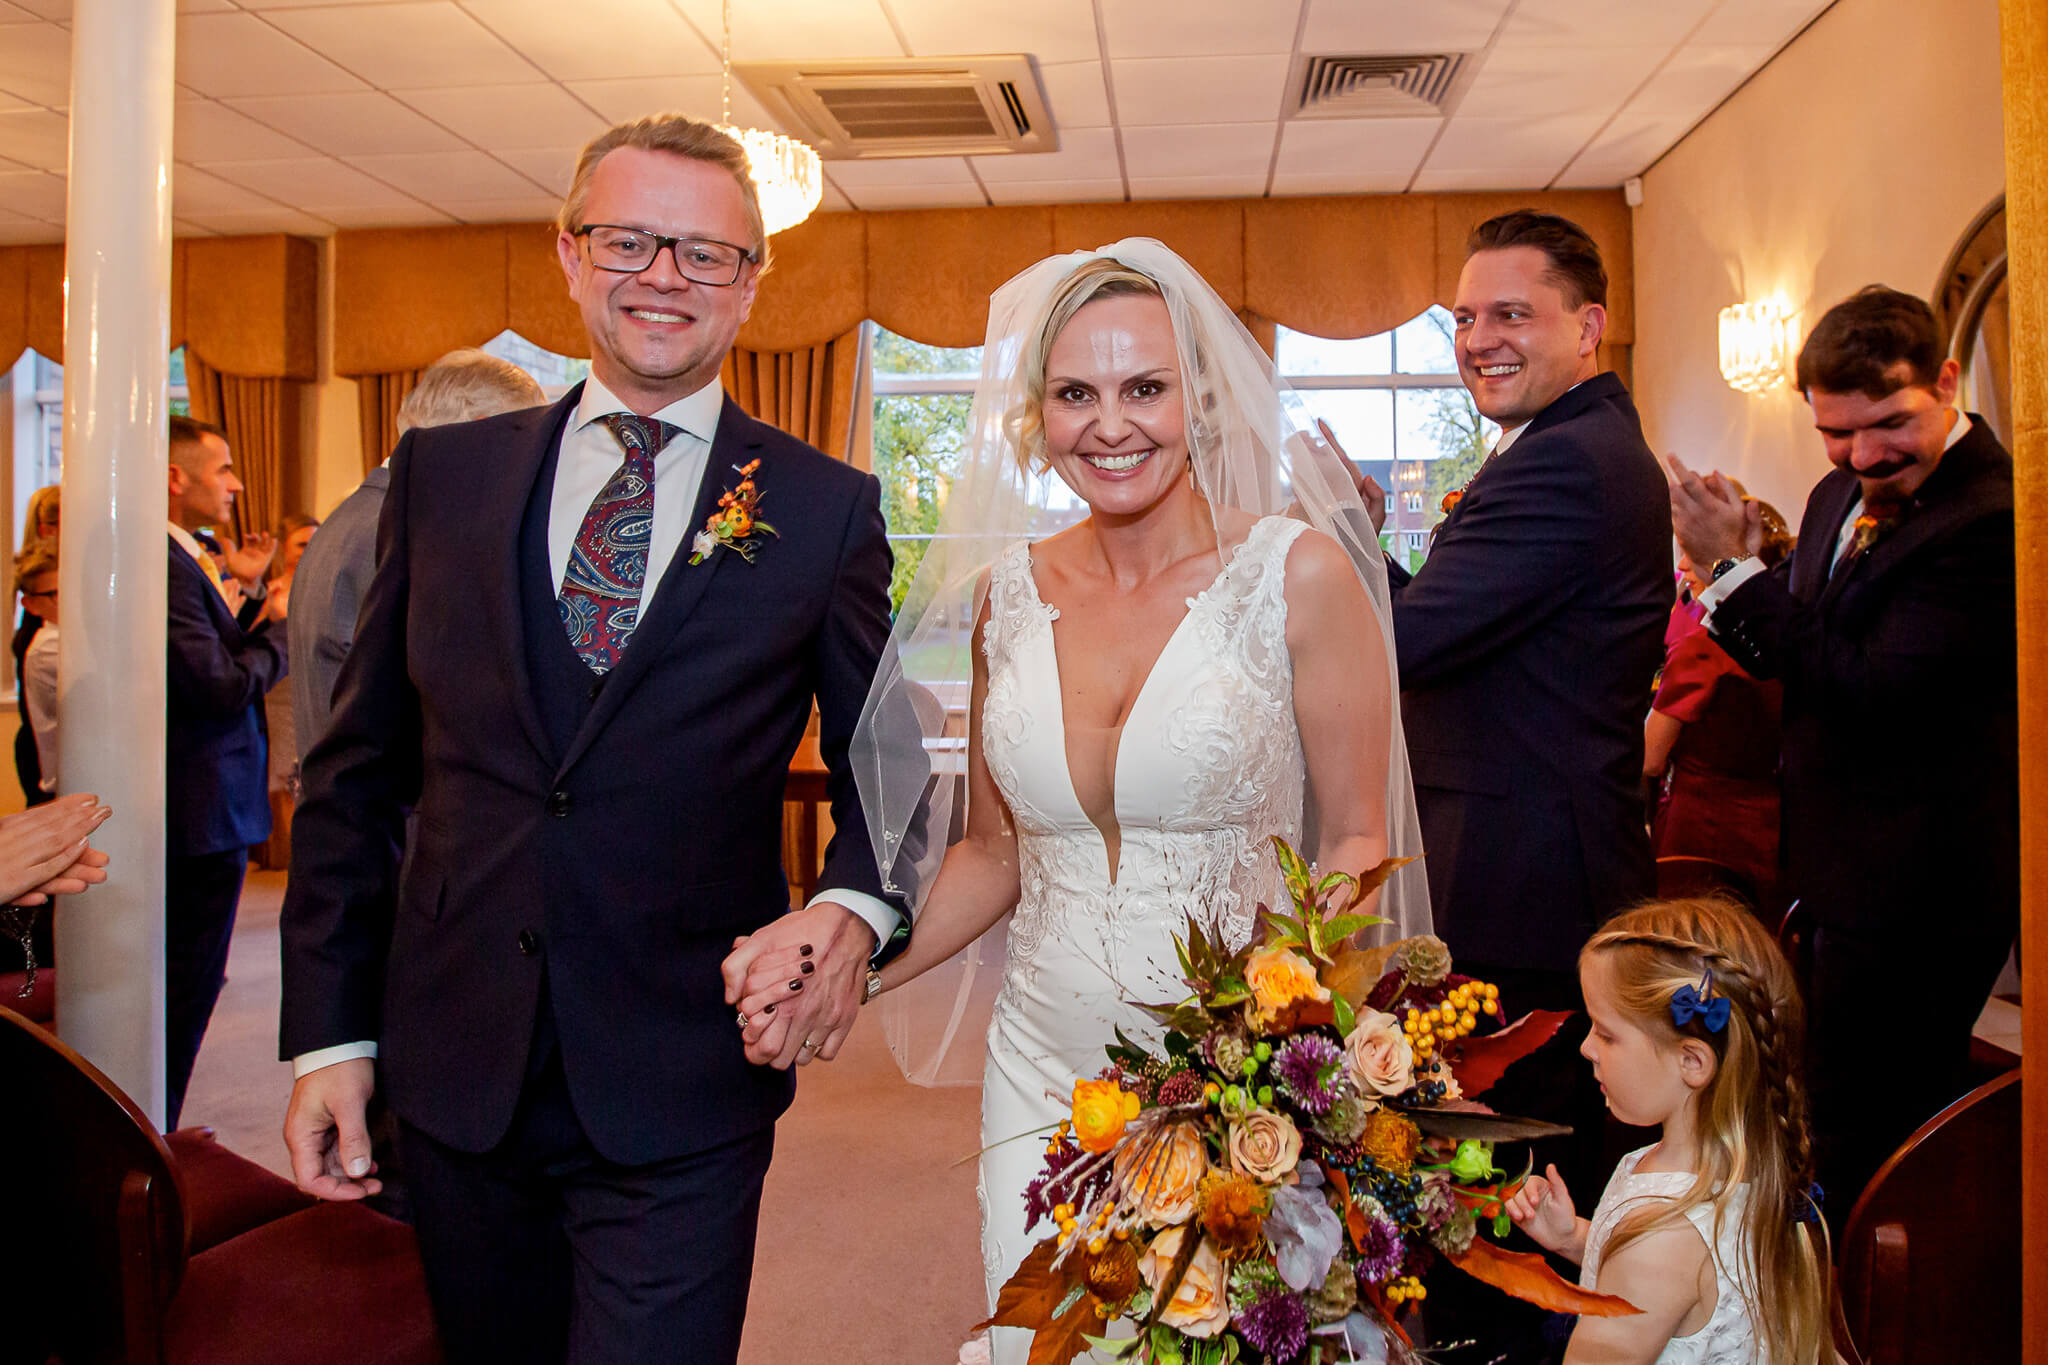 wedding-walking-aisle-photography-stanbury-photography